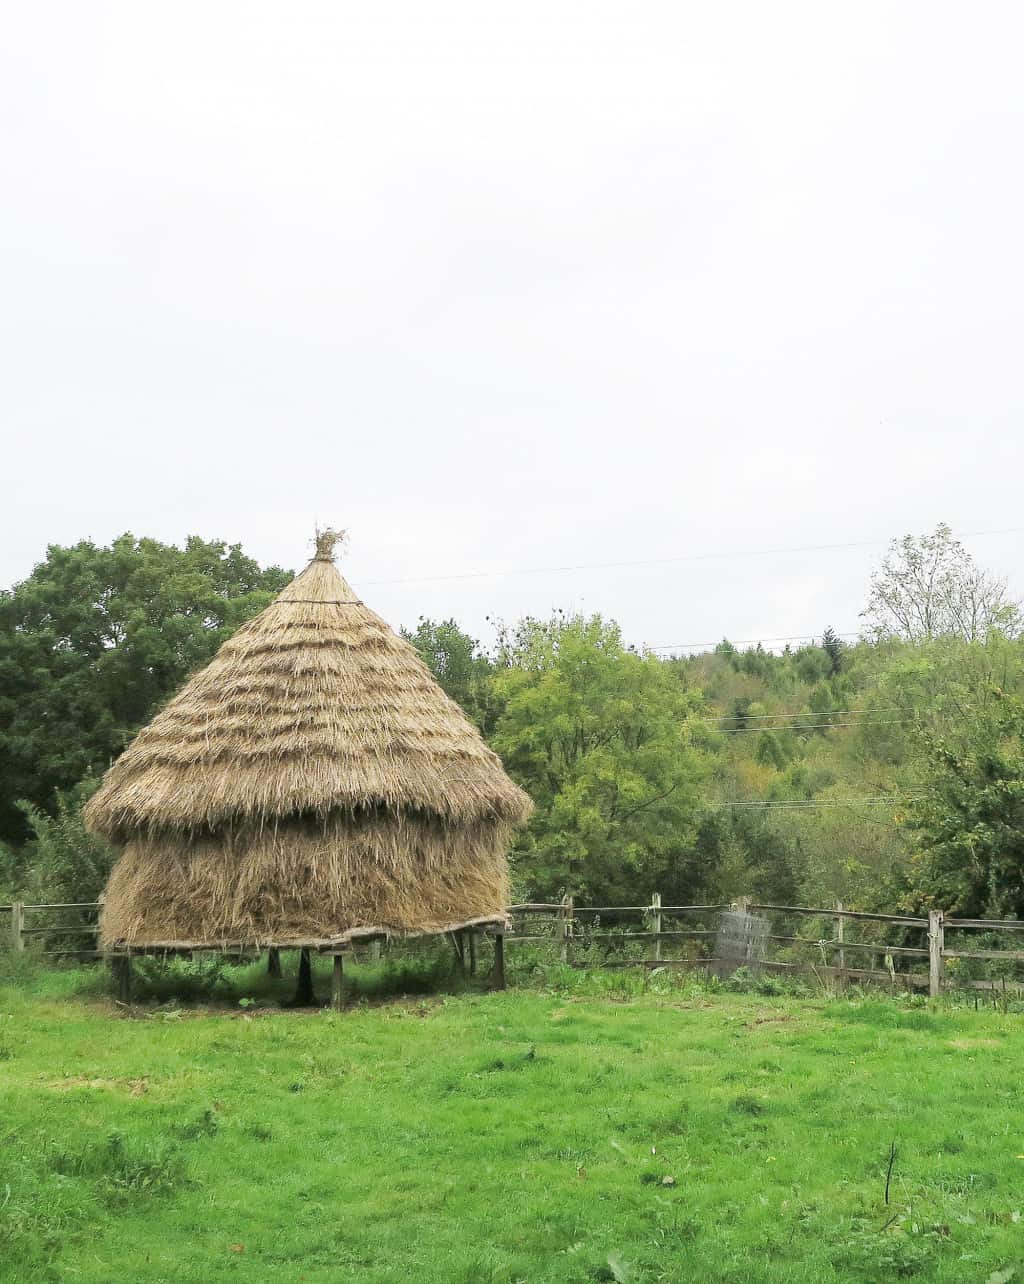 The working farm at the Chiltern Open Air Museum